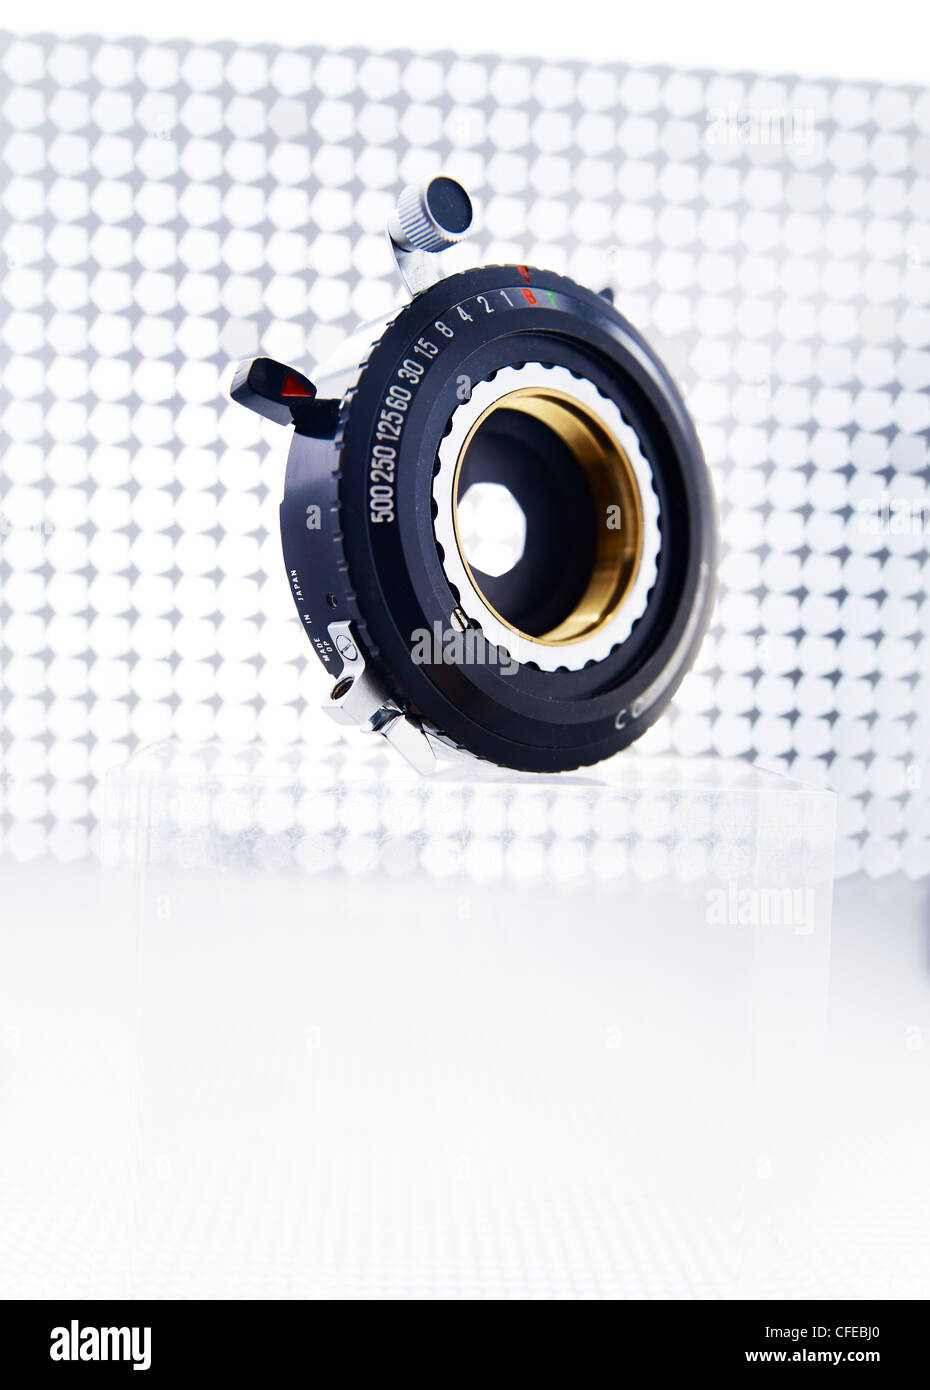 Large format lens shutter no camera - Stock Image